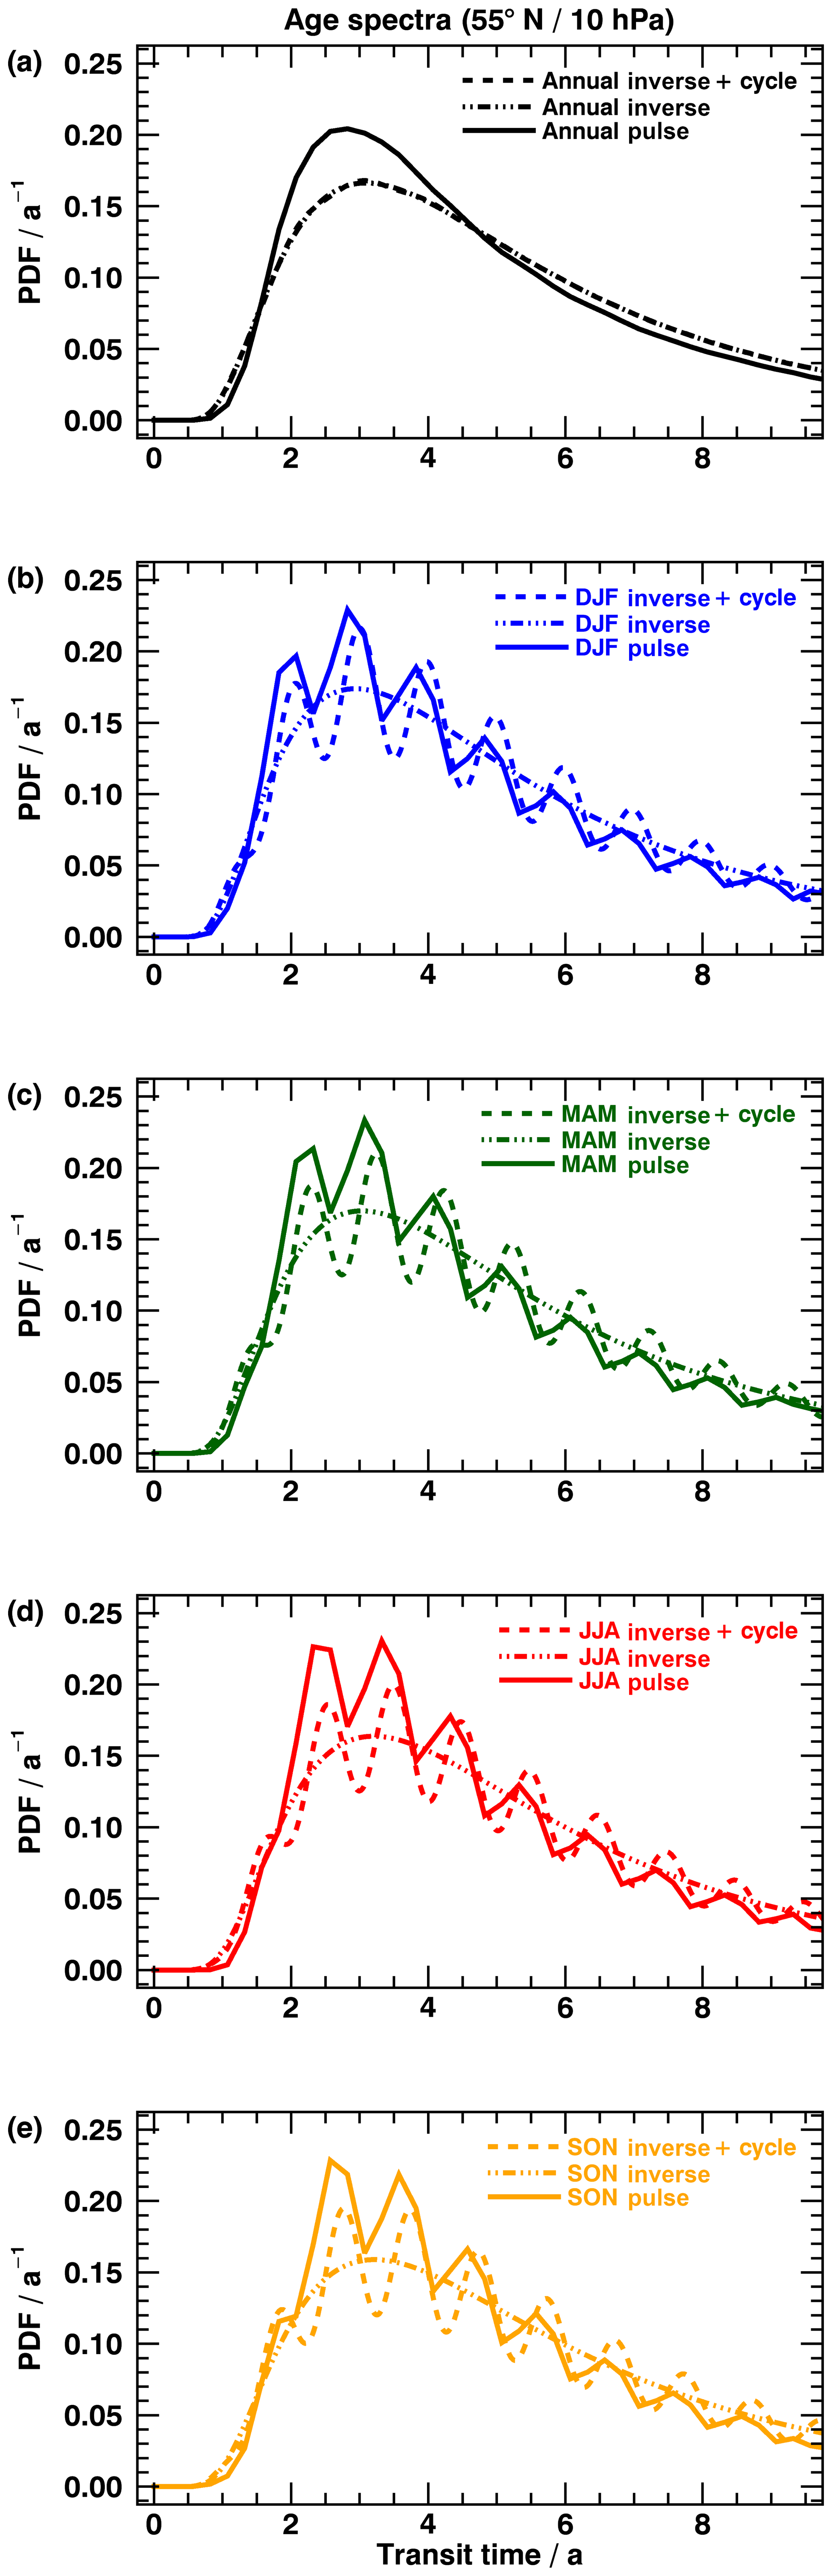 ACP - Deriving stratospheric age of air spectra using an